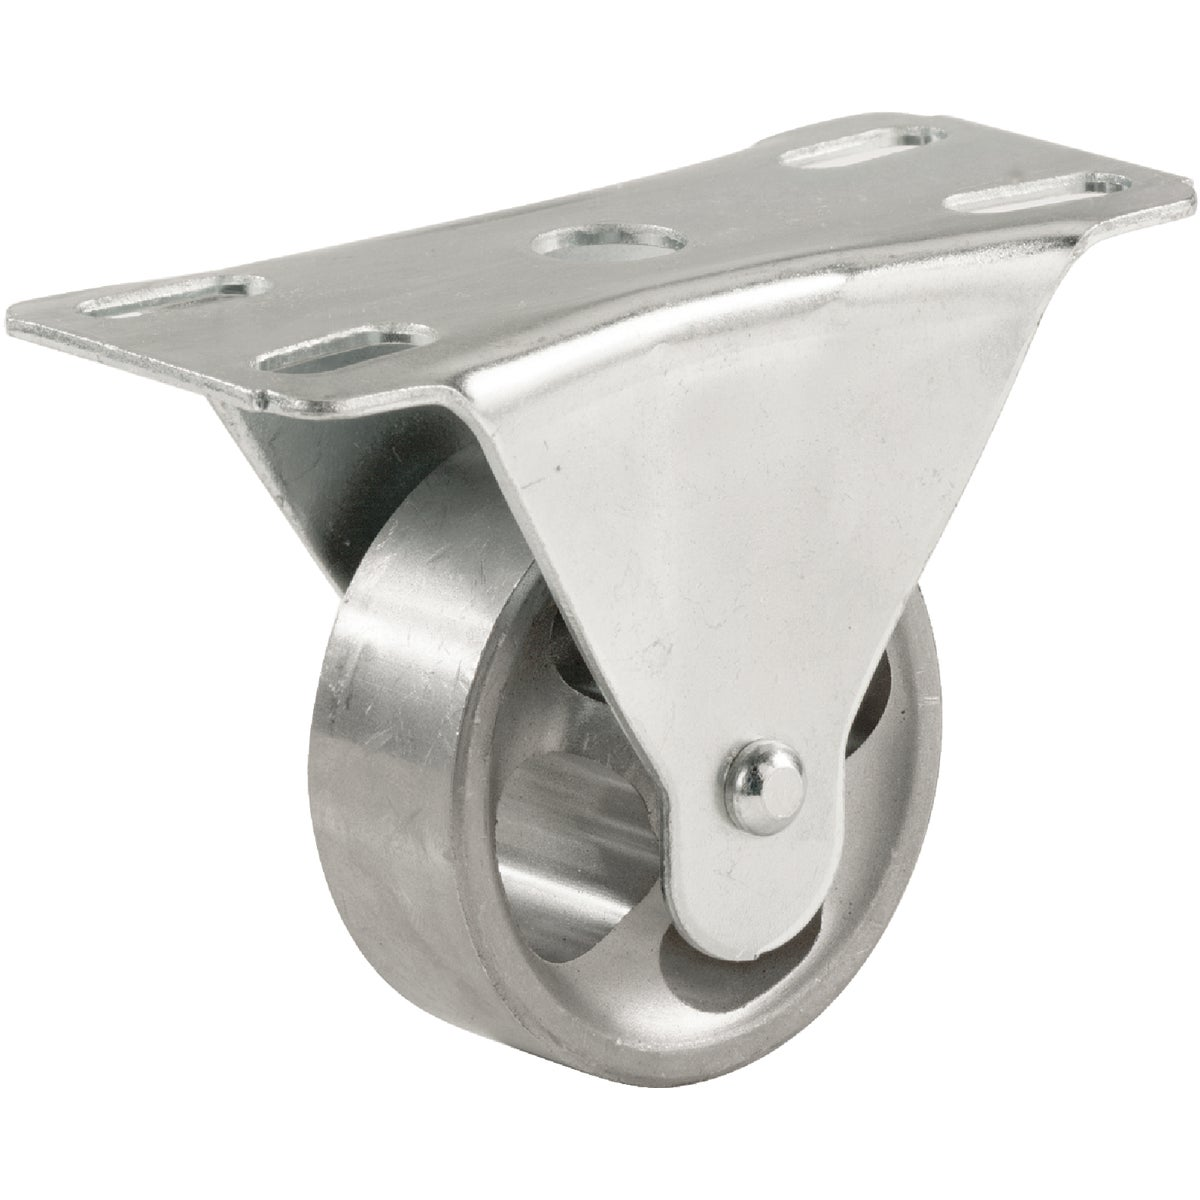 "2-1/2"" RIGID IRON CASTER - 9184 by Shepherd Hardware"